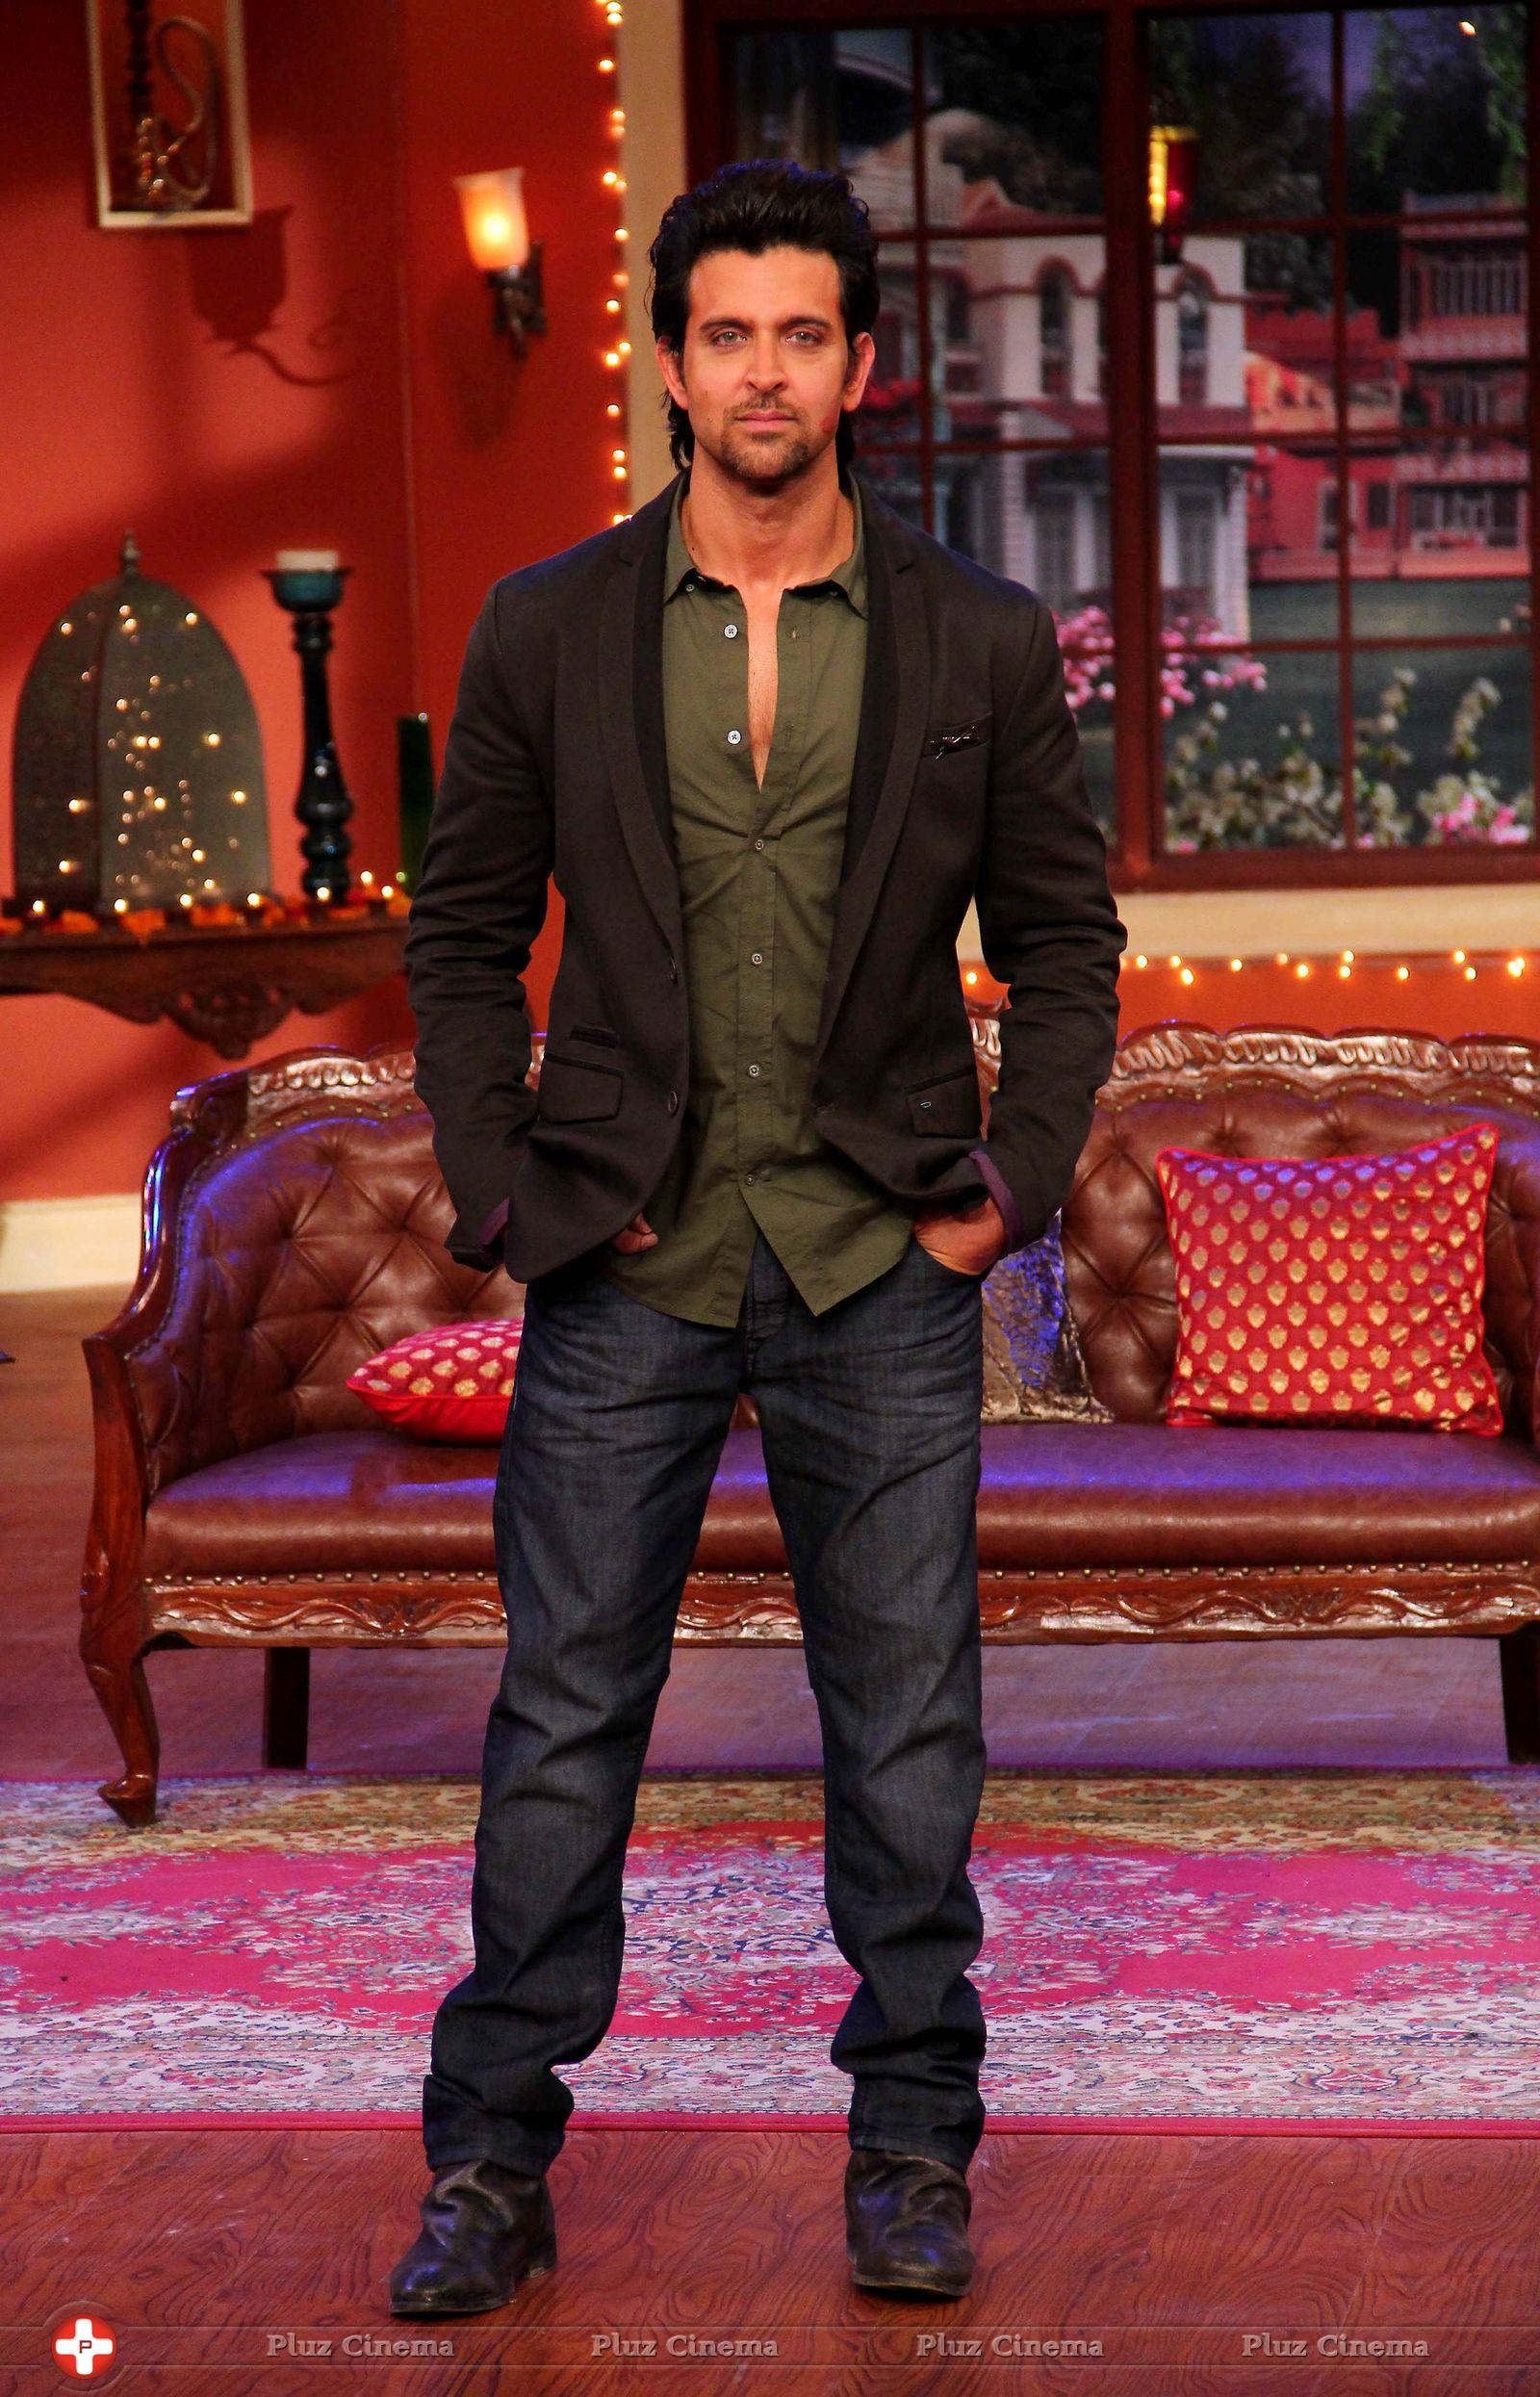 hrithik roshan promotes krrish 3 on the sets of comedy nights with